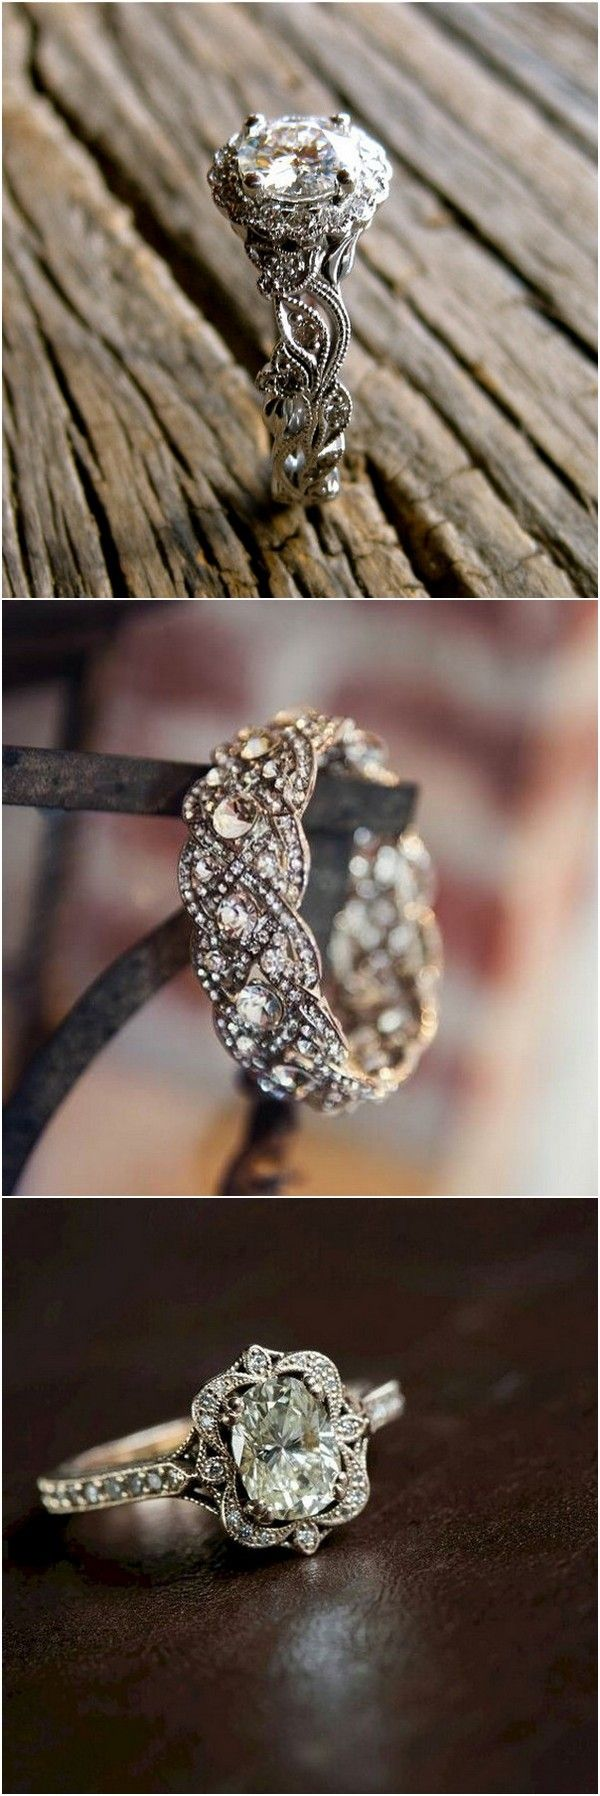 Vintage inspired wedding engagement rings #wedding #weddingrings #engagementrings